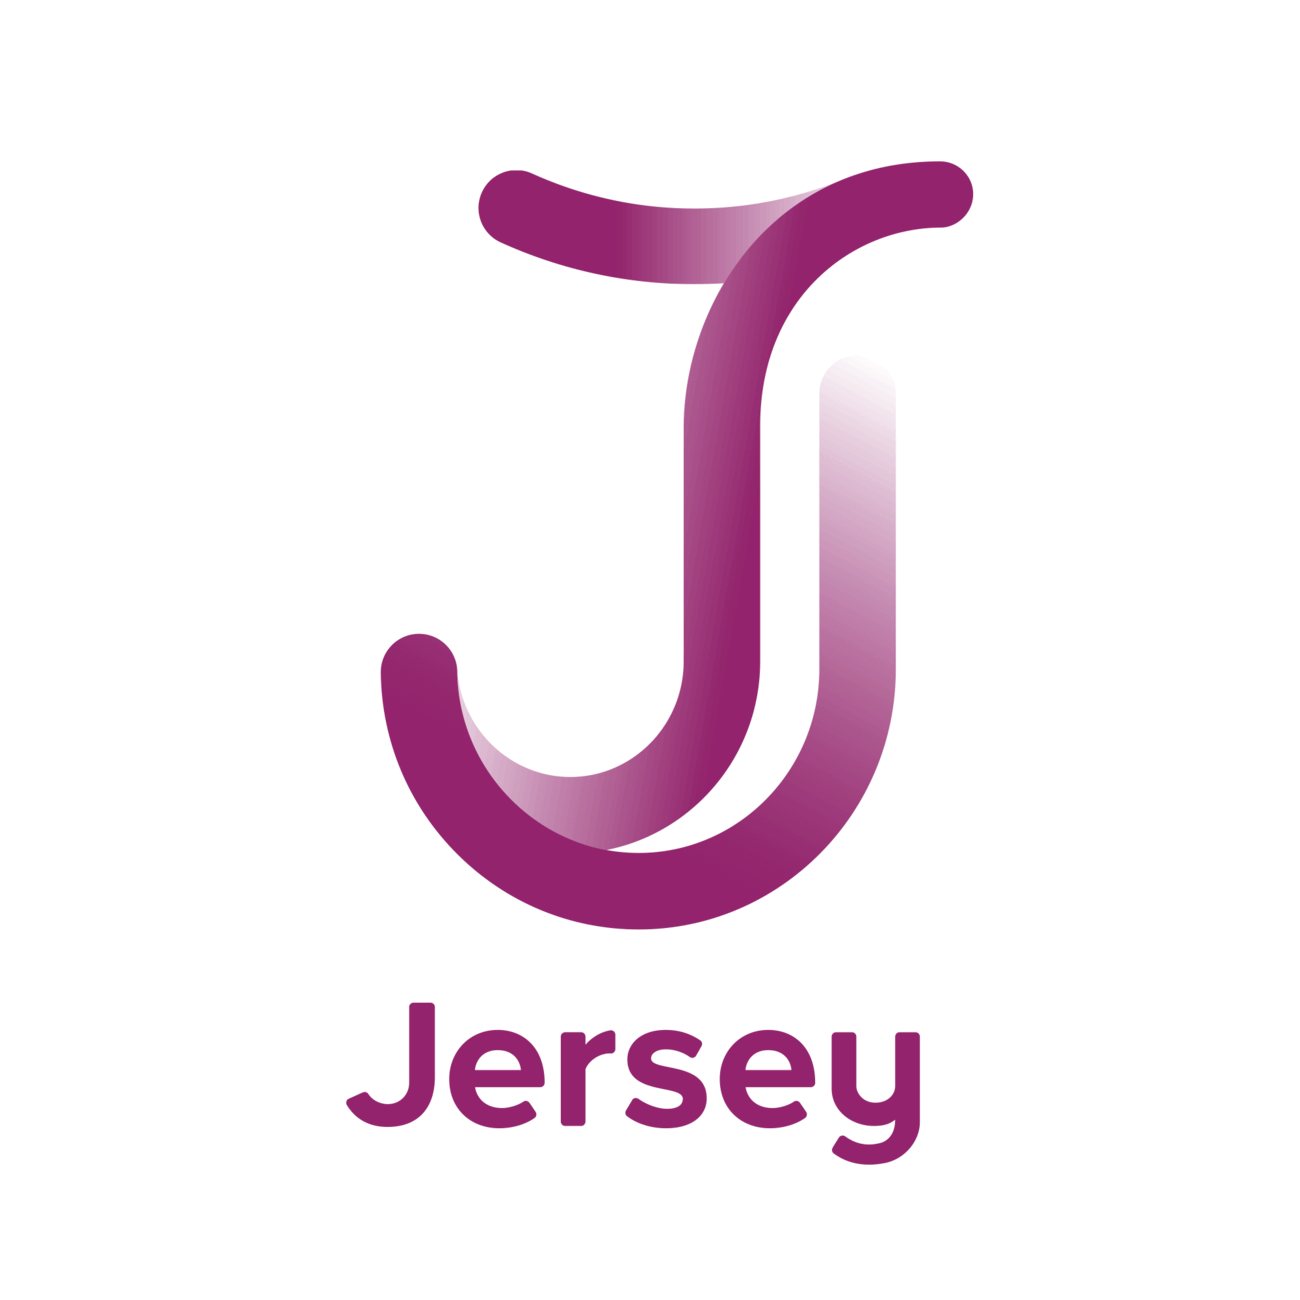 Chief Executive Officer - Visit Jersey